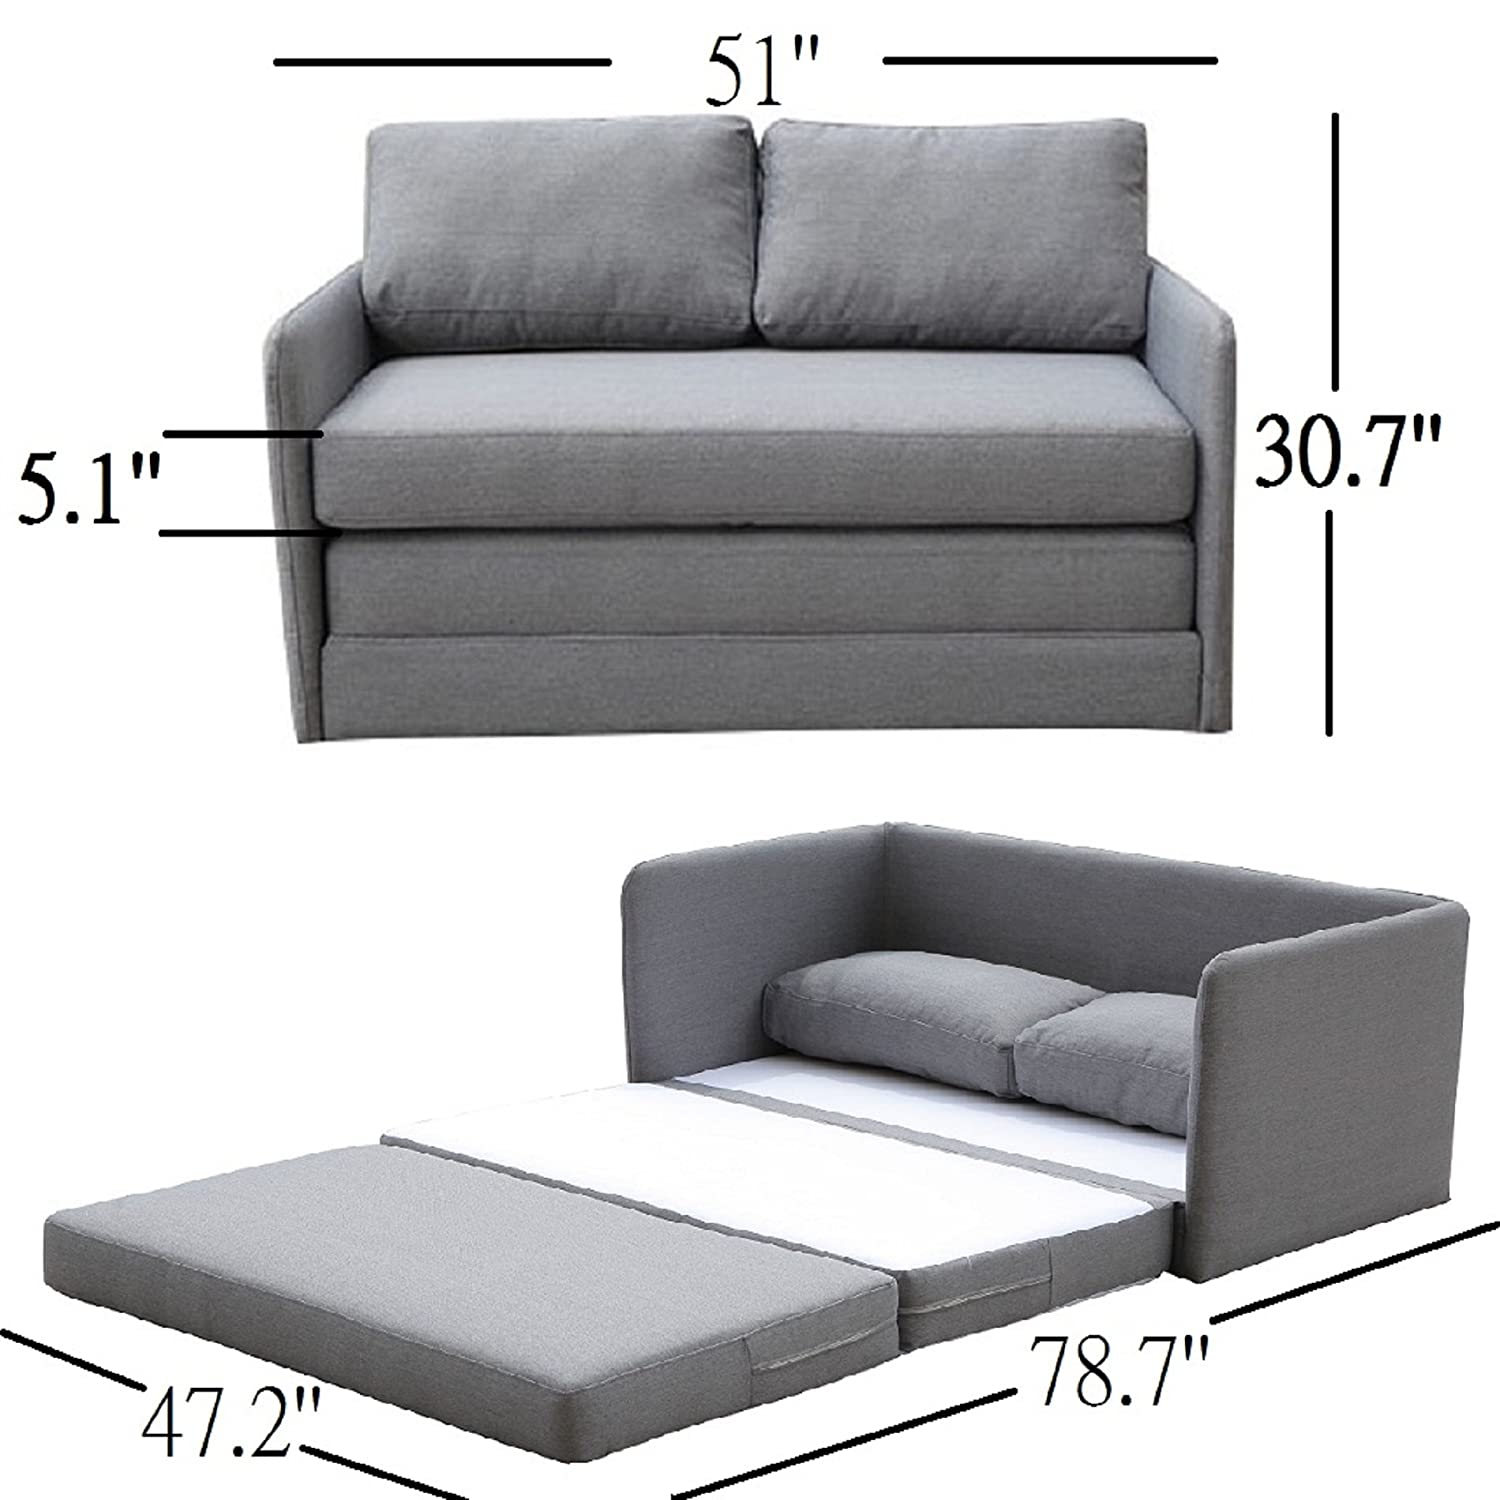 tufted collections mid products loveseat modern fabric sofa love sofas century light g grey futon seat linen